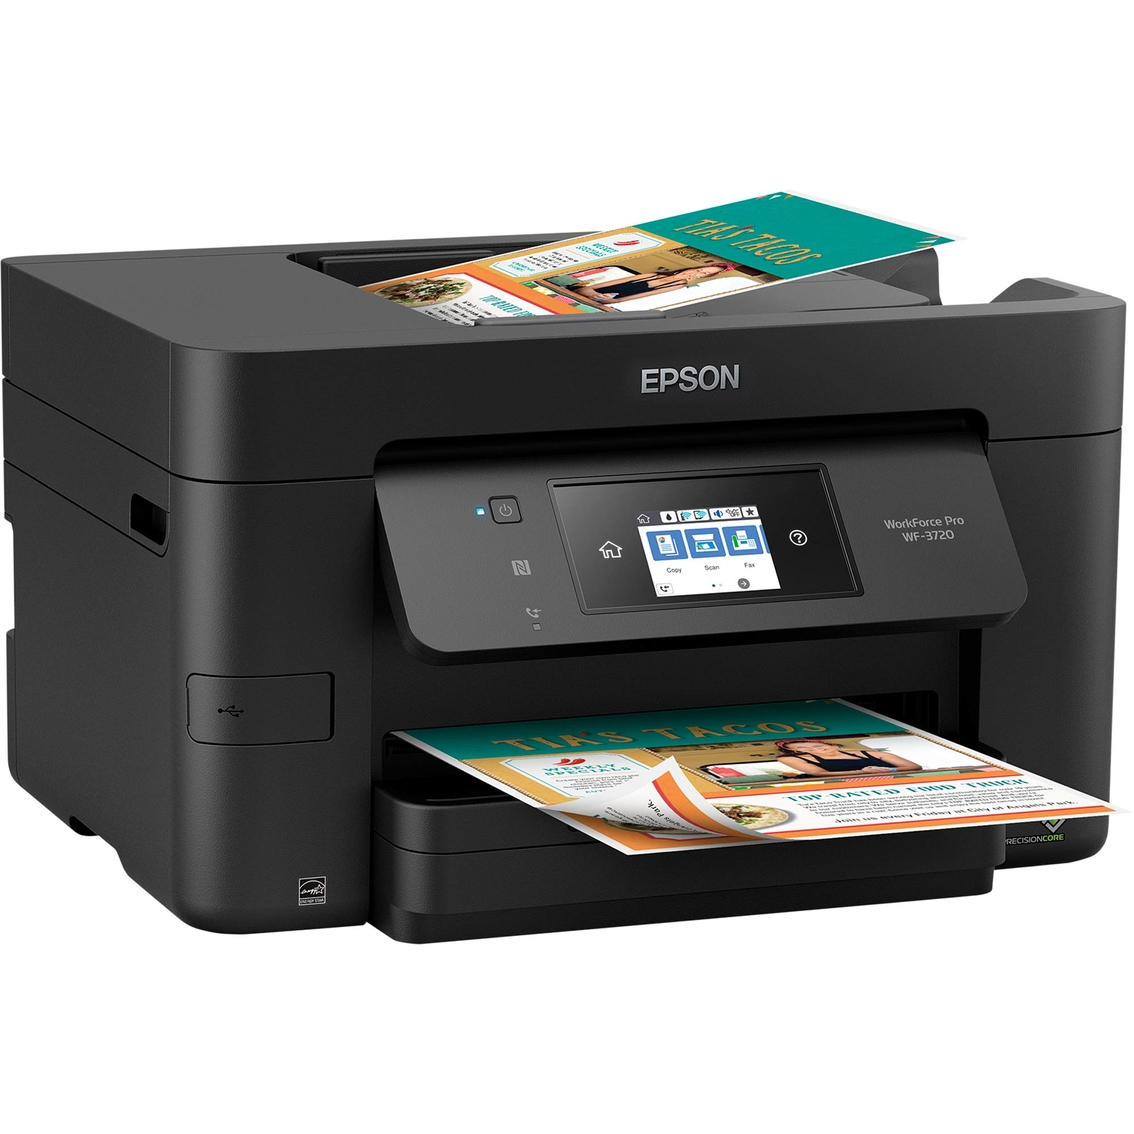 Epson Workforce Pro Wf-3720 All-in-one Printer | All-in-one